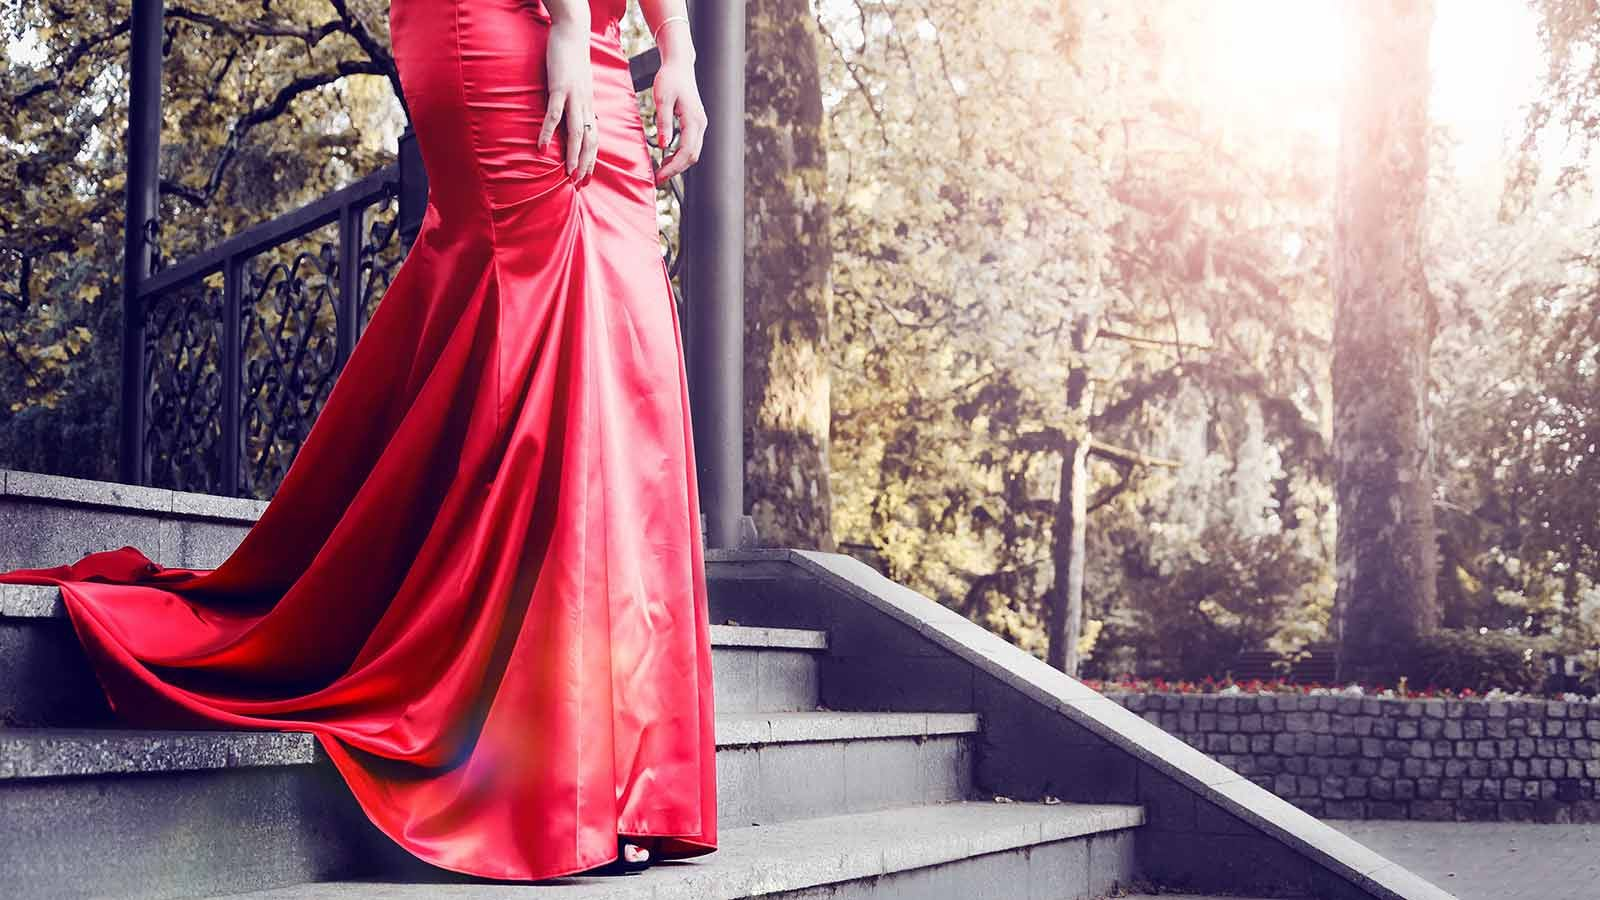 woman descending a staircase outdoors in a beautiful long red satin dress